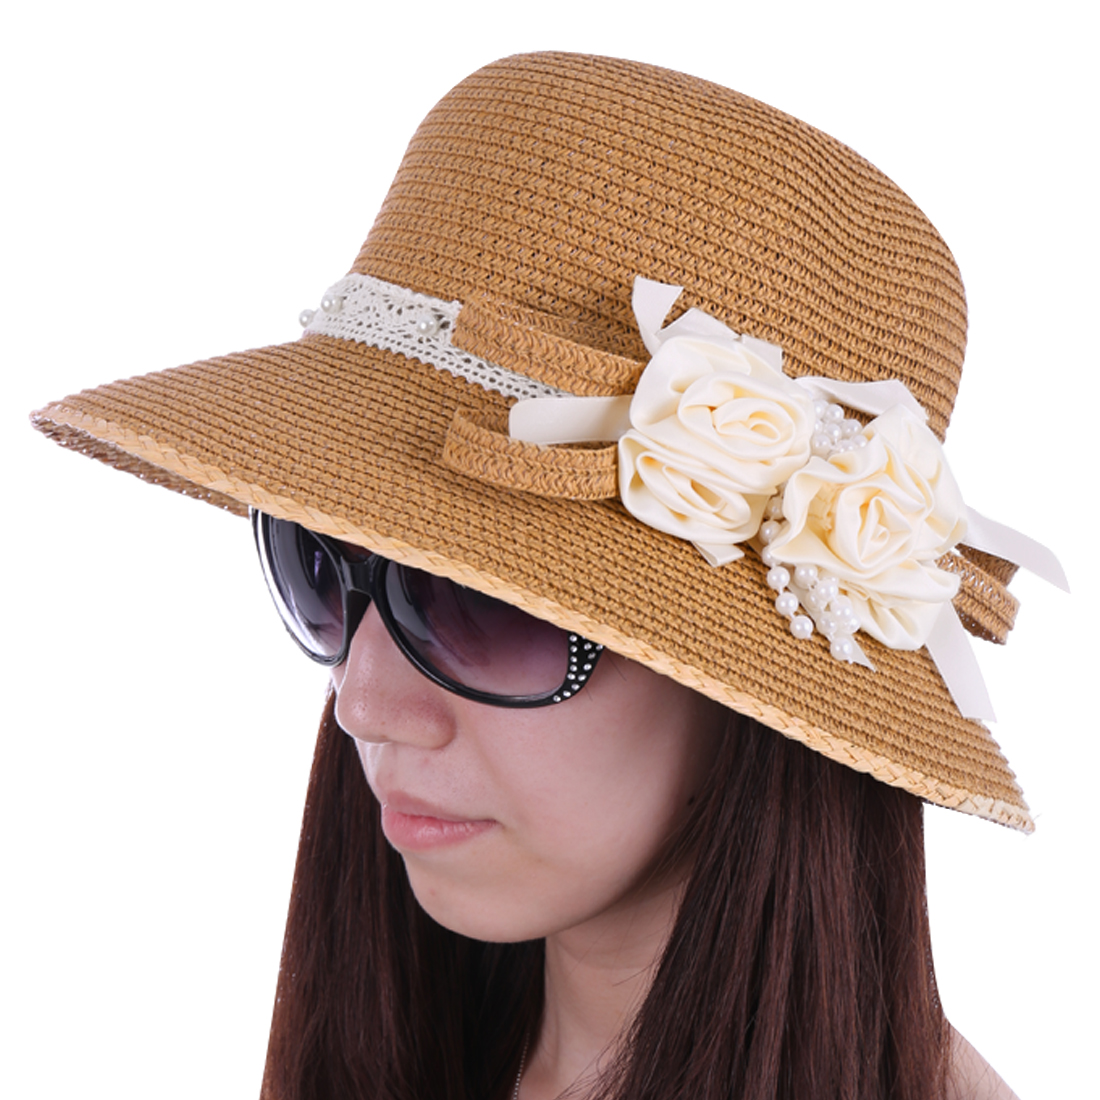 Women Woven Straw Crochet Strap Detail Sun Hat Light Brown